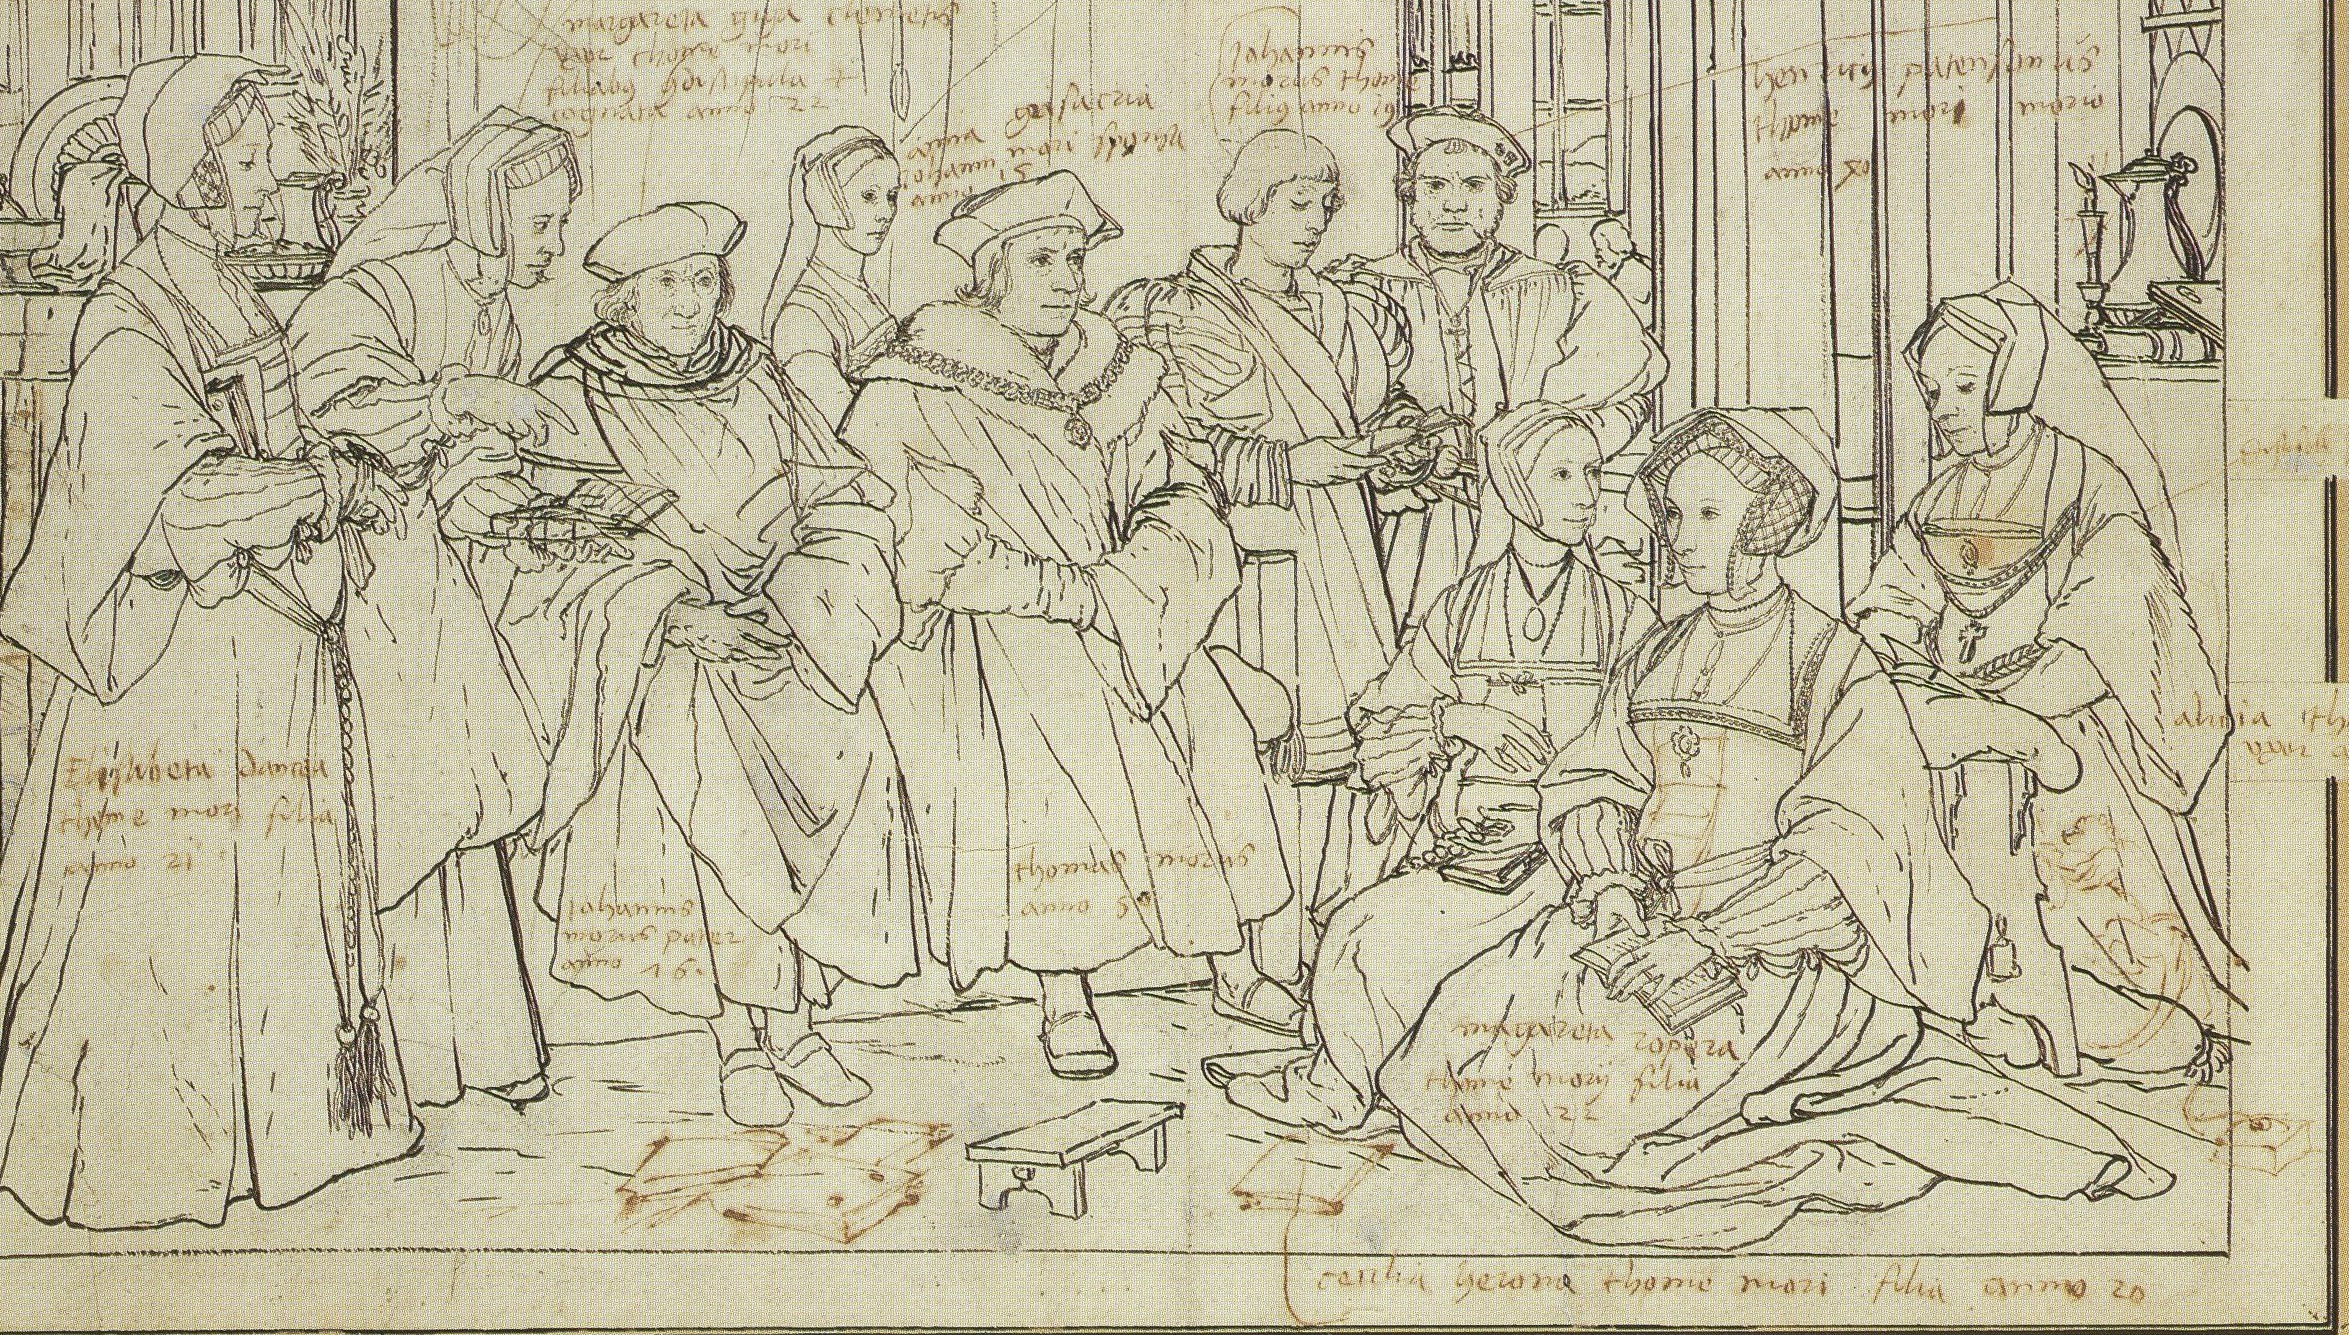 The study for the Holbein portrait of the More Family